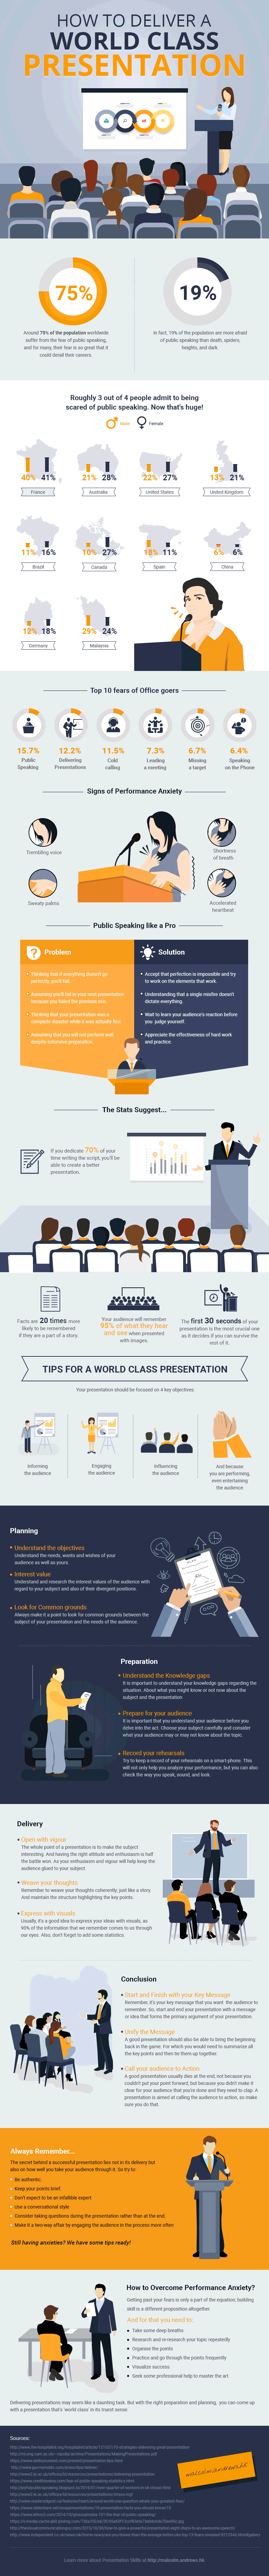 How to Deliver a World Class Presentation